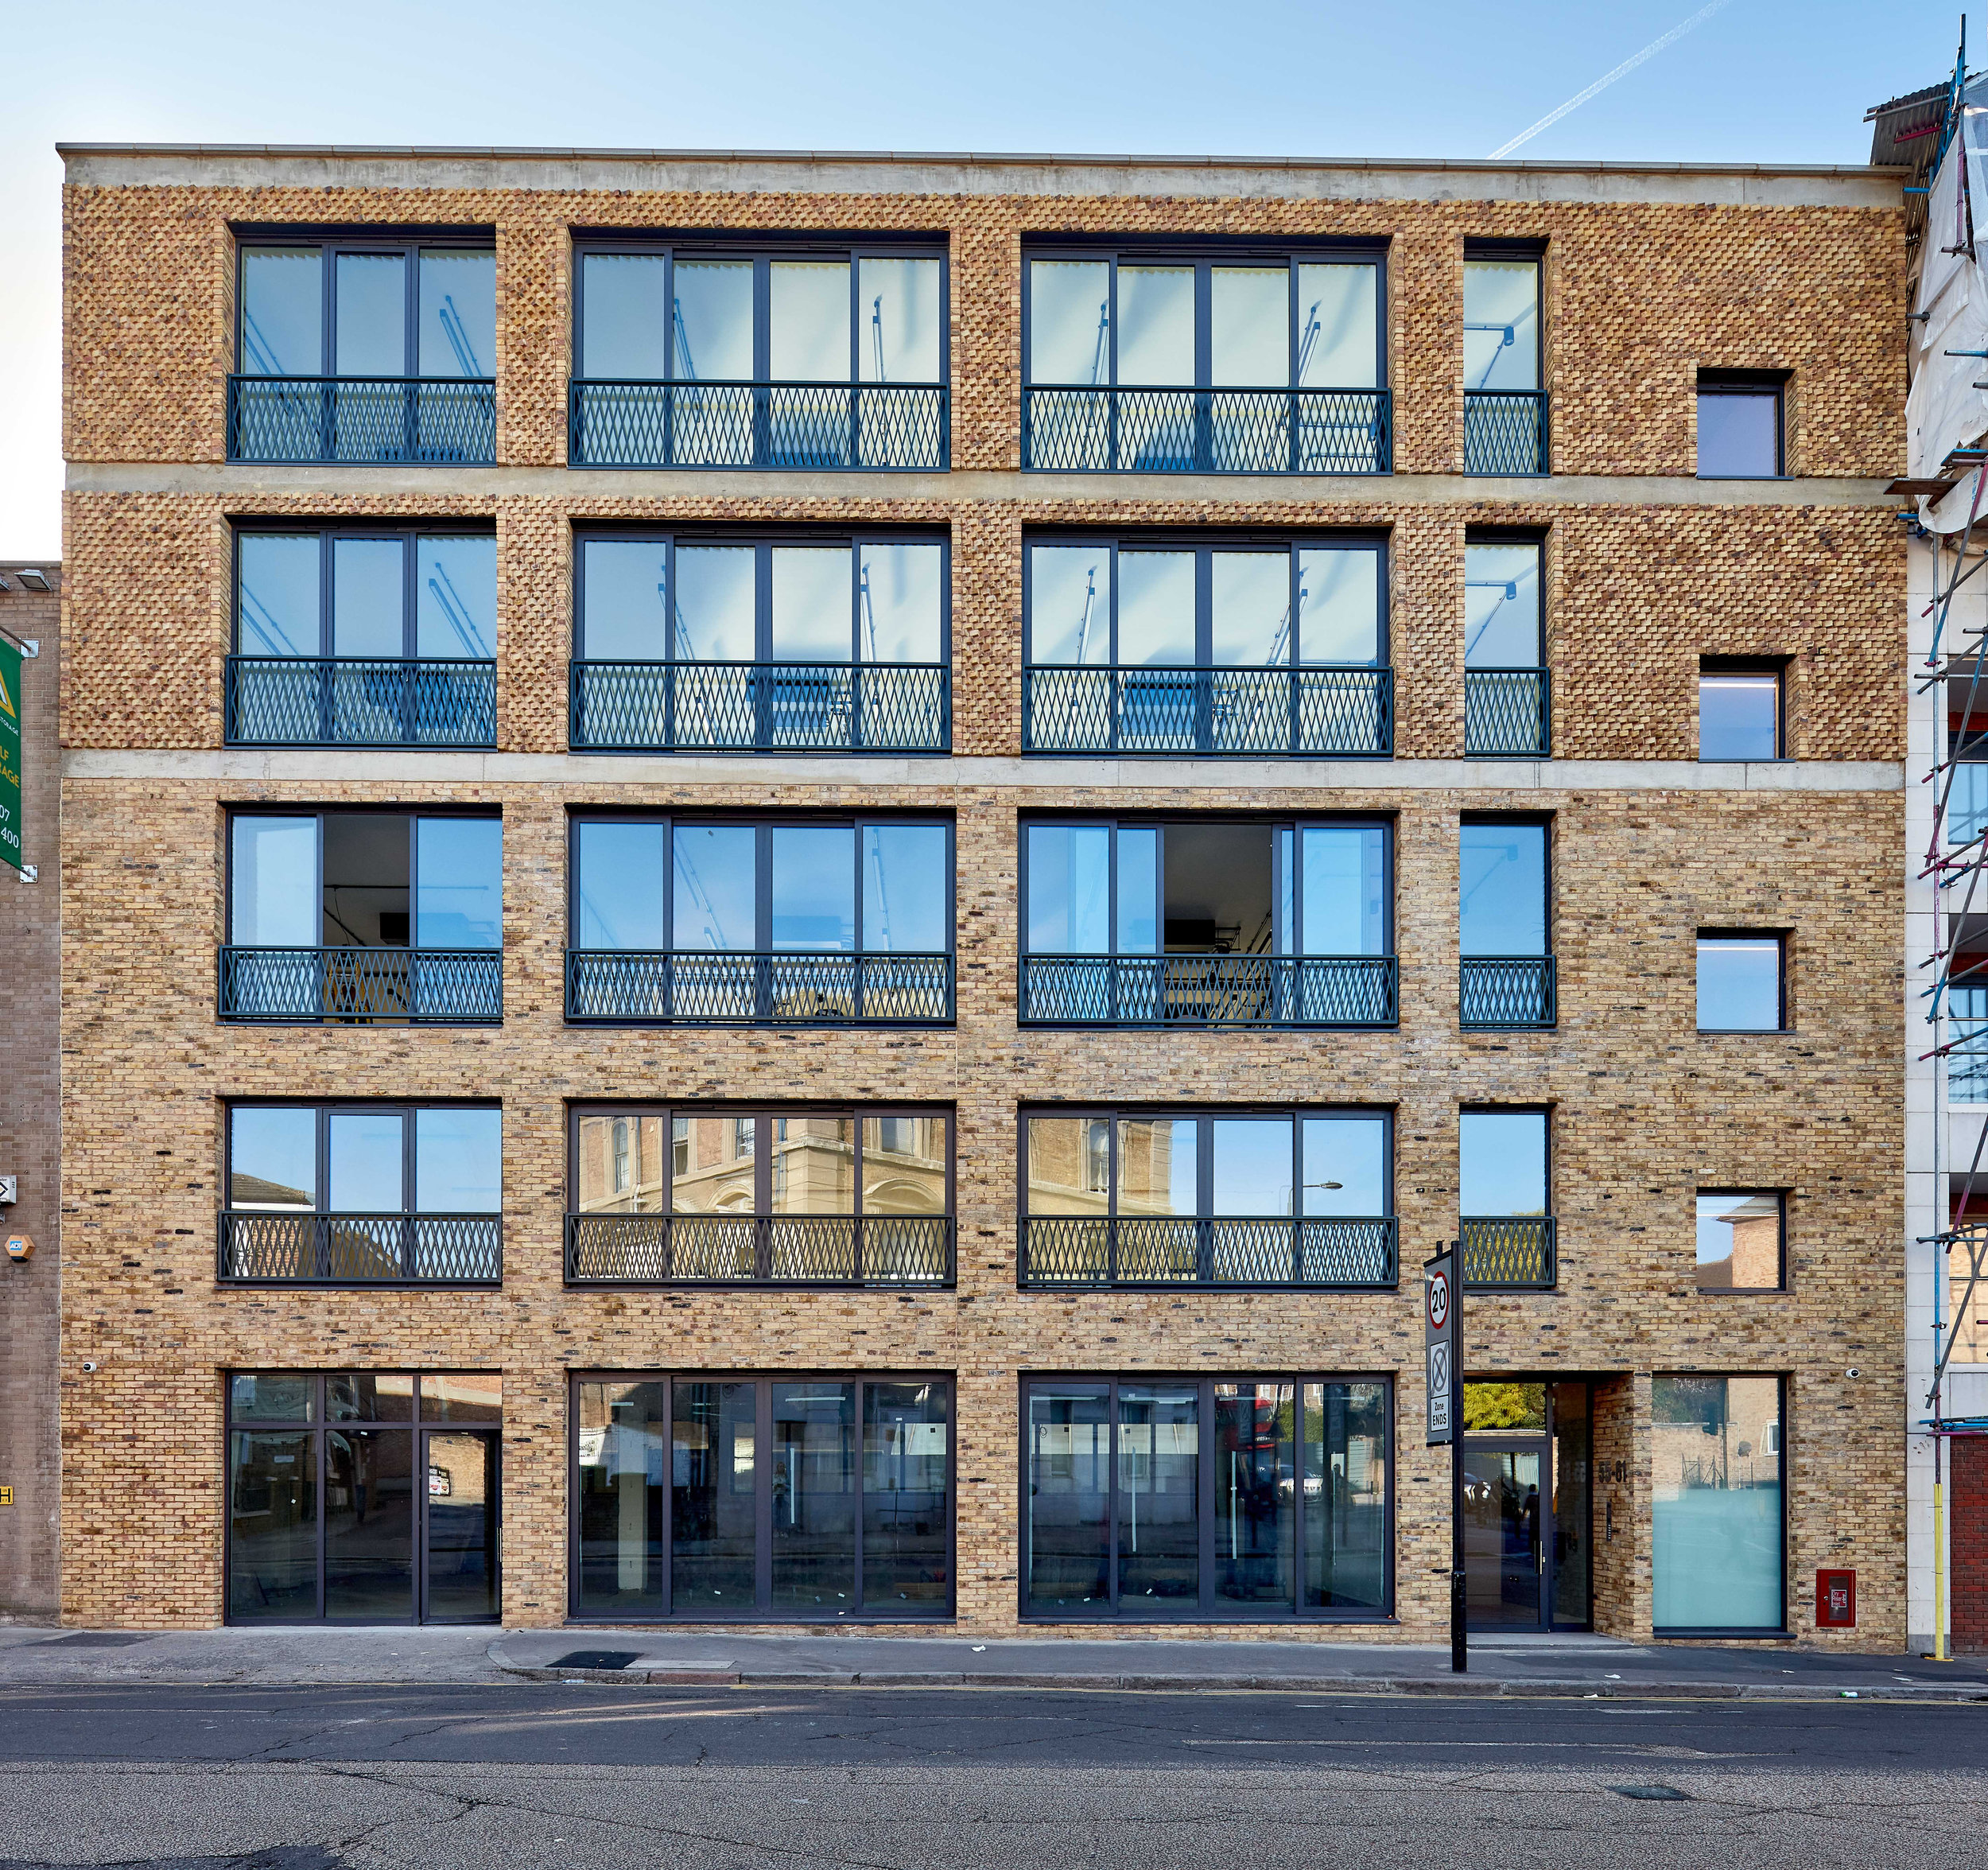 the brewery building, king's cross - The Brewery Building occupies a prominent position on the corner of Brewery Road and York Way, a short walk from The Granary Complex at King's Cross.Planning consent was granted for a 2 storey extension to the existing property, which Atlas implemented to completion within 12 months.Designed by award winning practice Squire & Partners, the building offers over 11,000sqft of B1 and B1c space, designed with innovative business in mind.